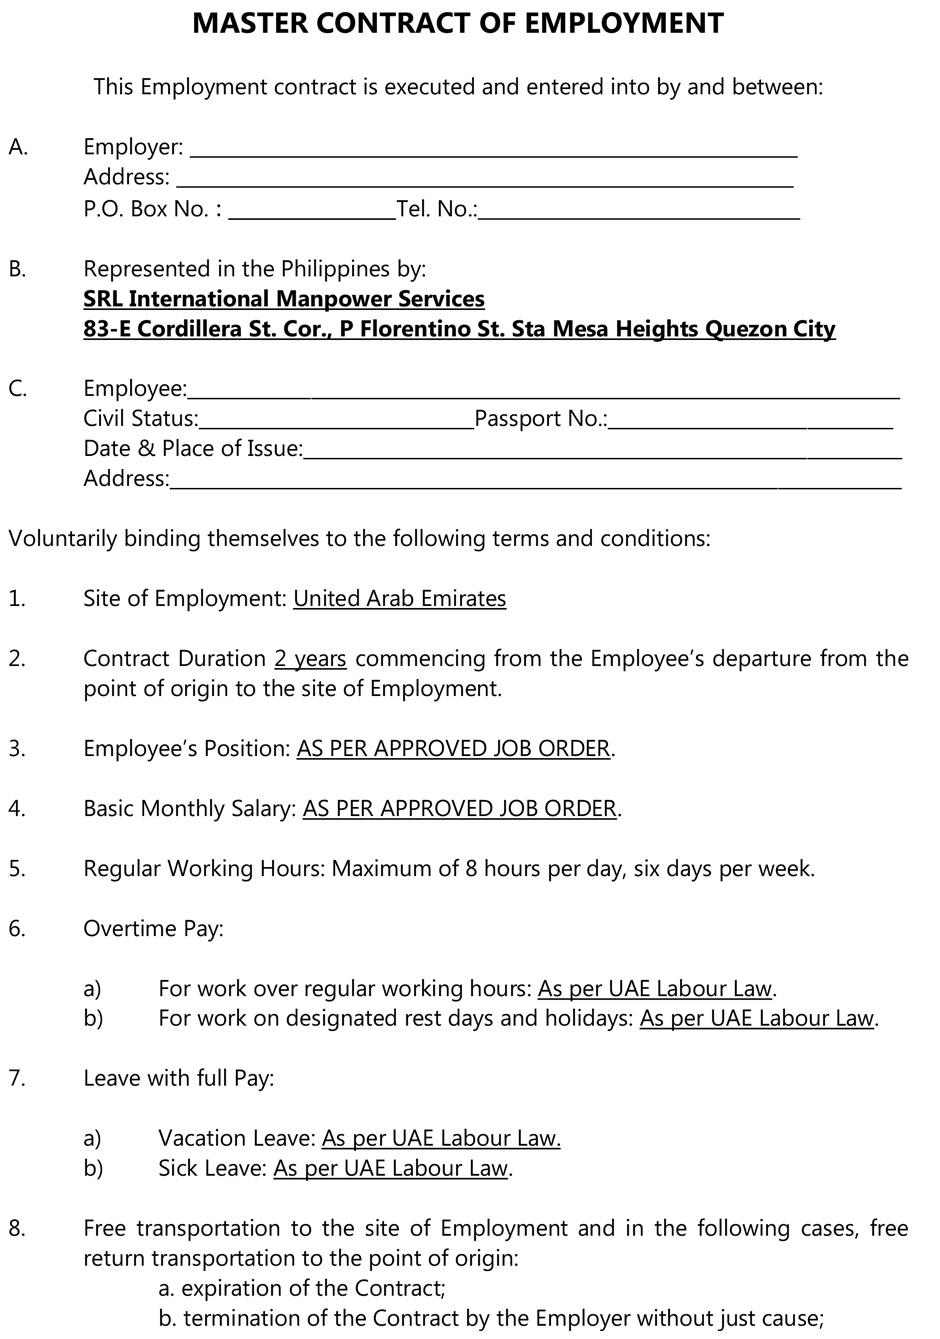 Master Contract of Employment